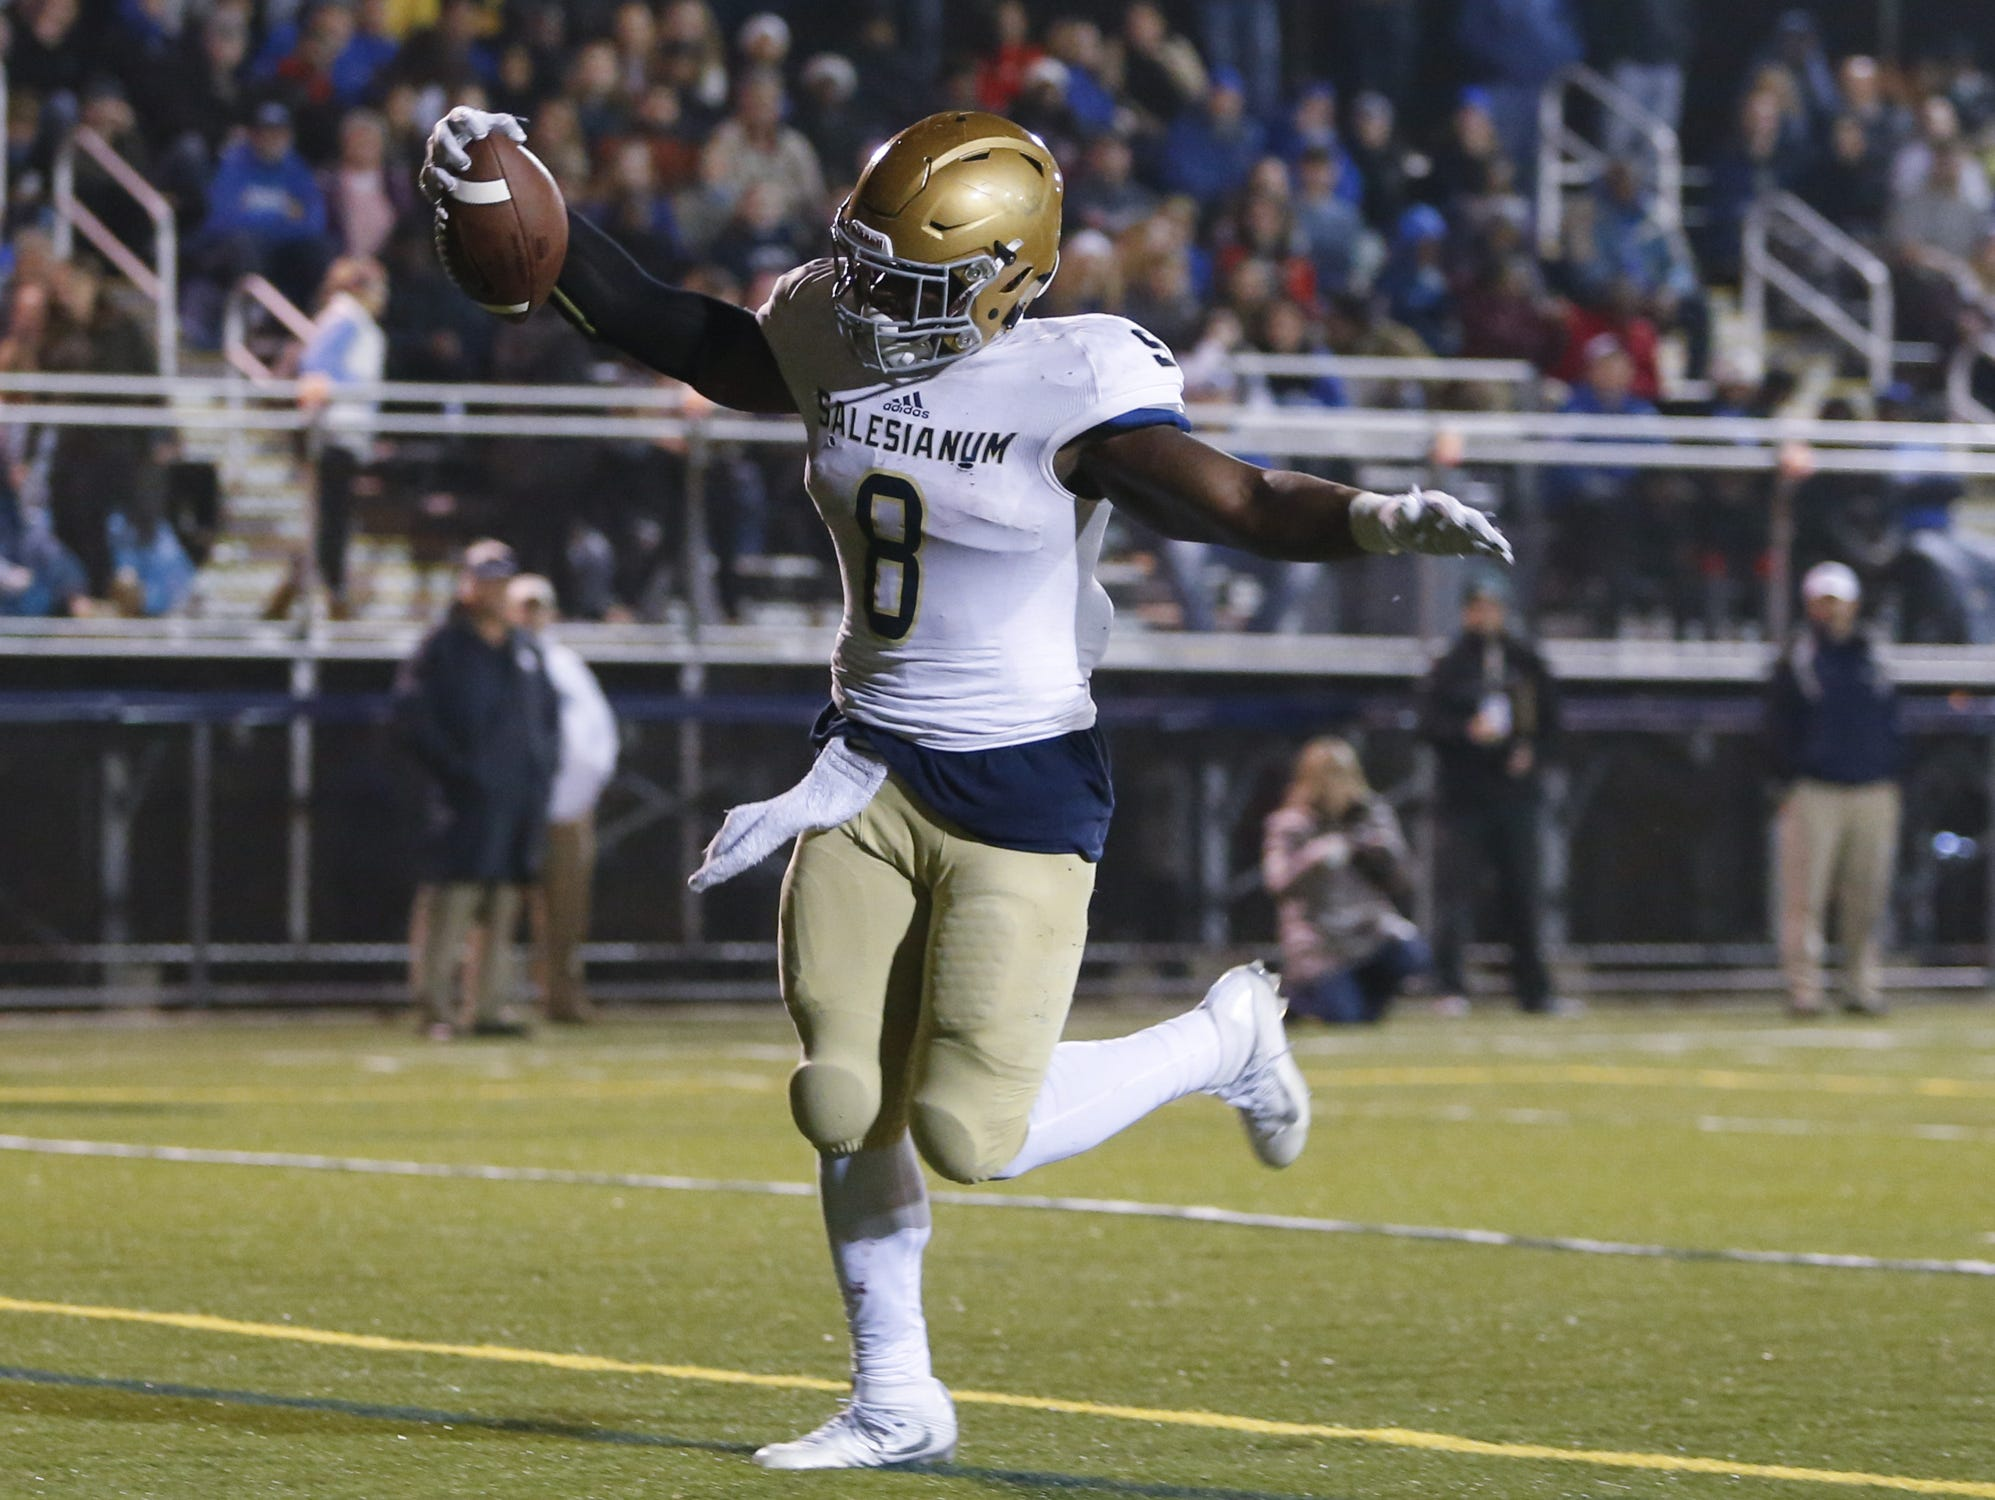 Salesianum's Josh Patrick scores on a run in the second quarter against Middletown in a DIAA Division I state tournament semifinal at Cavalier Stadium Friday.